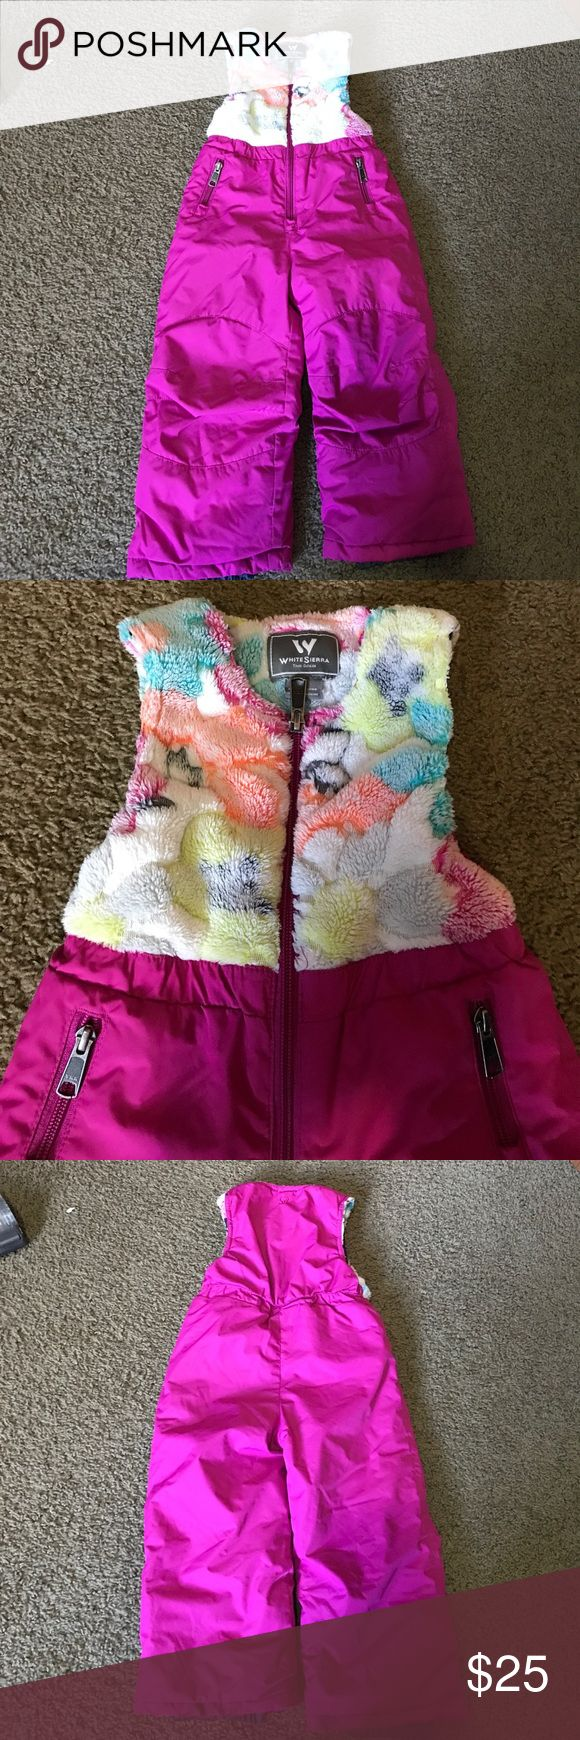 White Sierra toddler Girls ski bibs pants 2T EUC. White Sierra size 2T. Ski pants/bibs. Very good quality. Very cute! No issues at all. Smoke free home White Sierra Bottoms Overalls